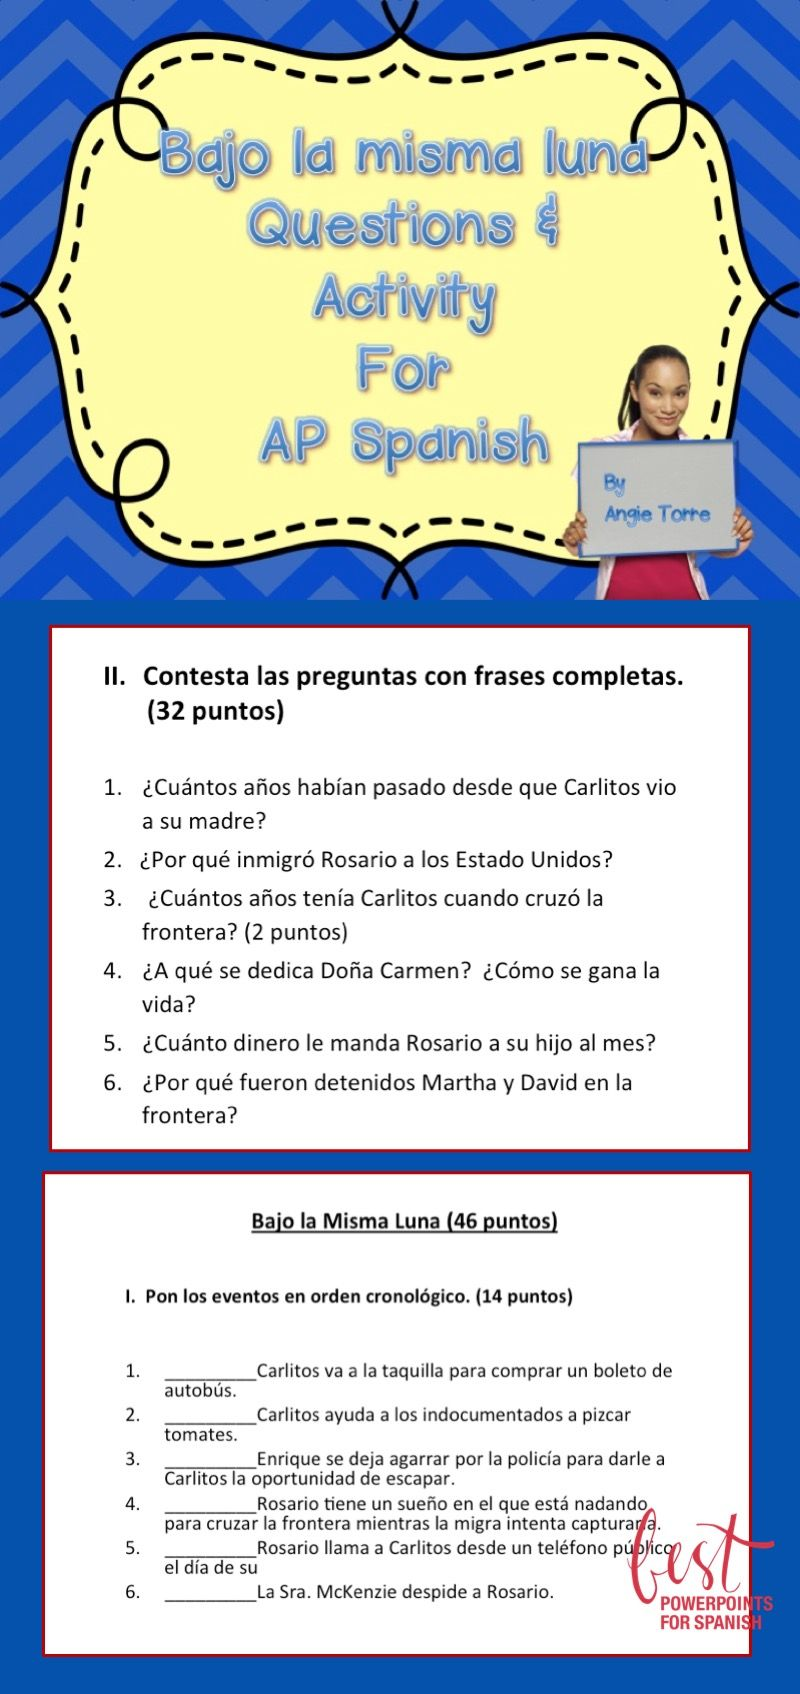 Bajo La Misma Luna Questions And Activity For Ap Spanish Teaching